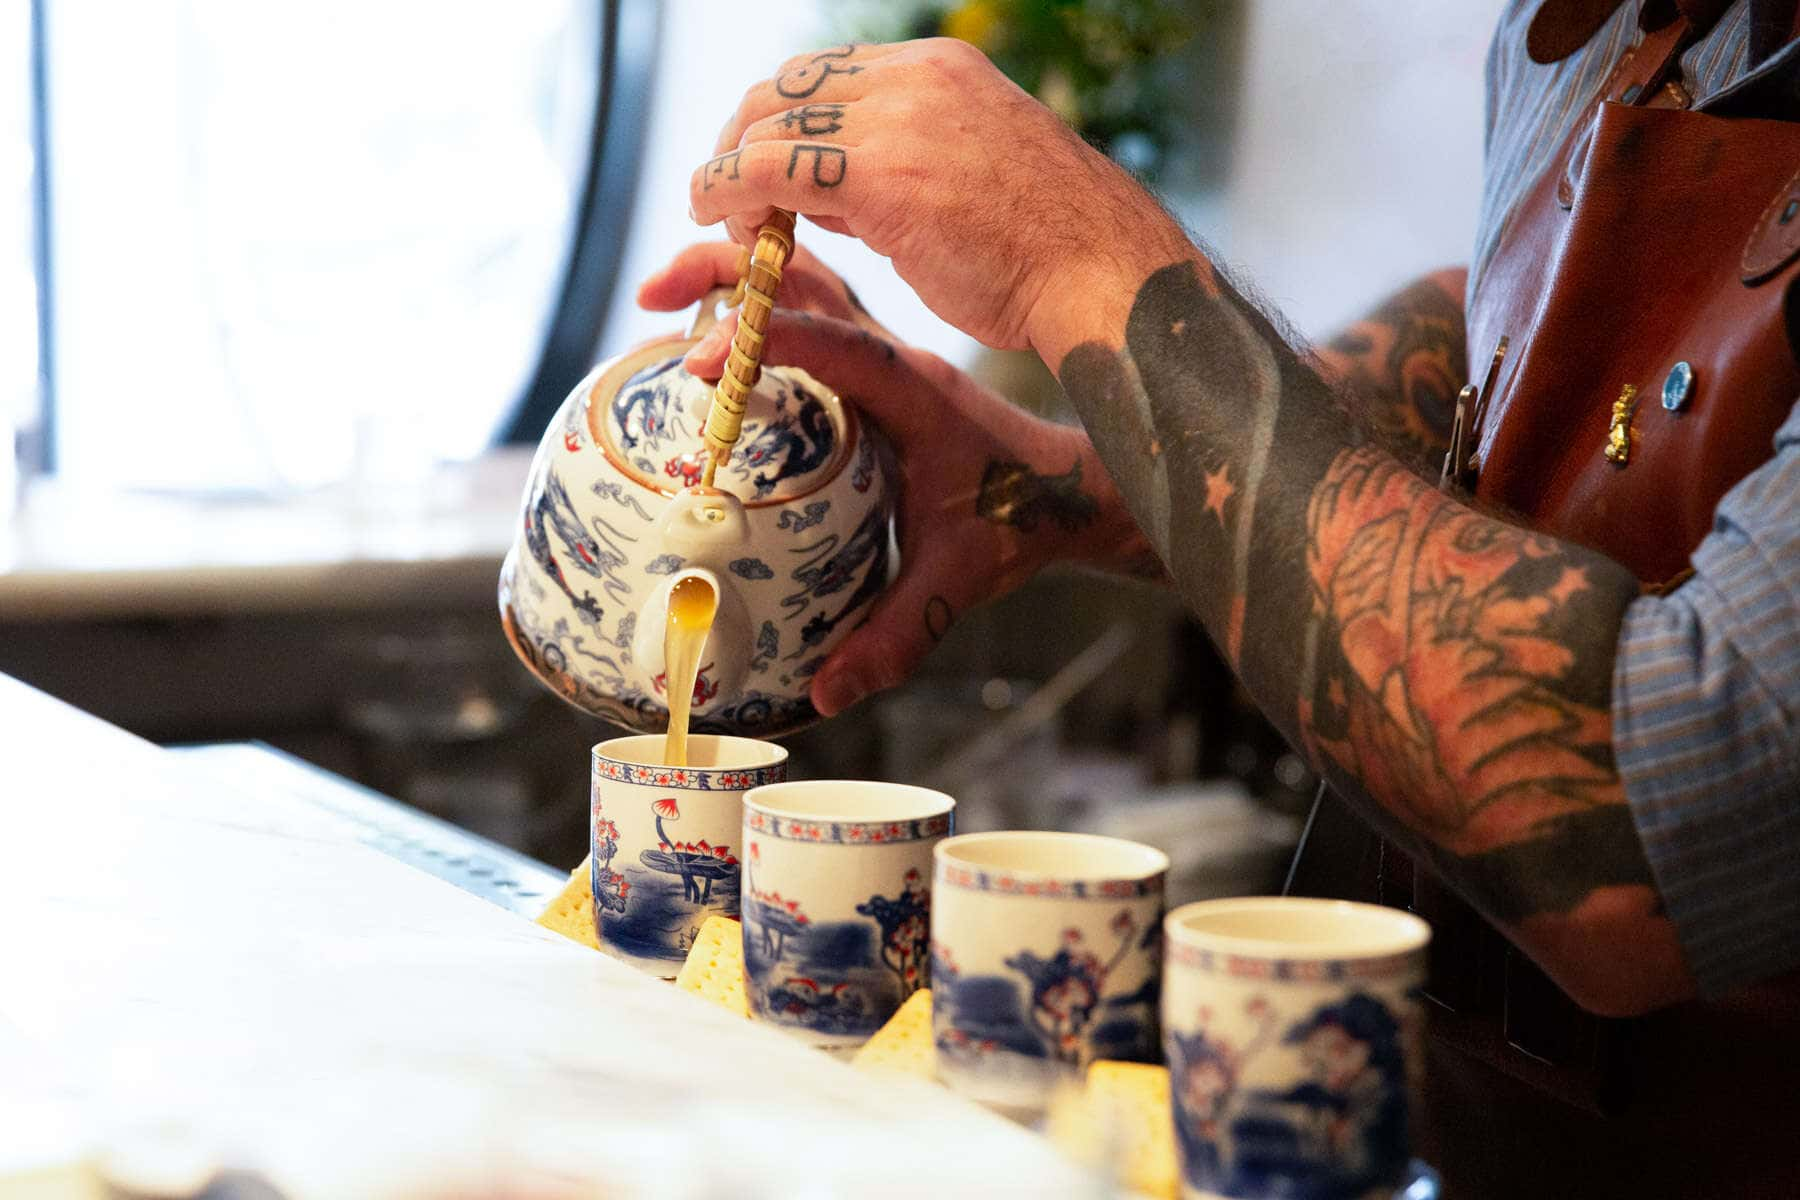 tea-cocktail-being-pored-by-tattooed-bartender